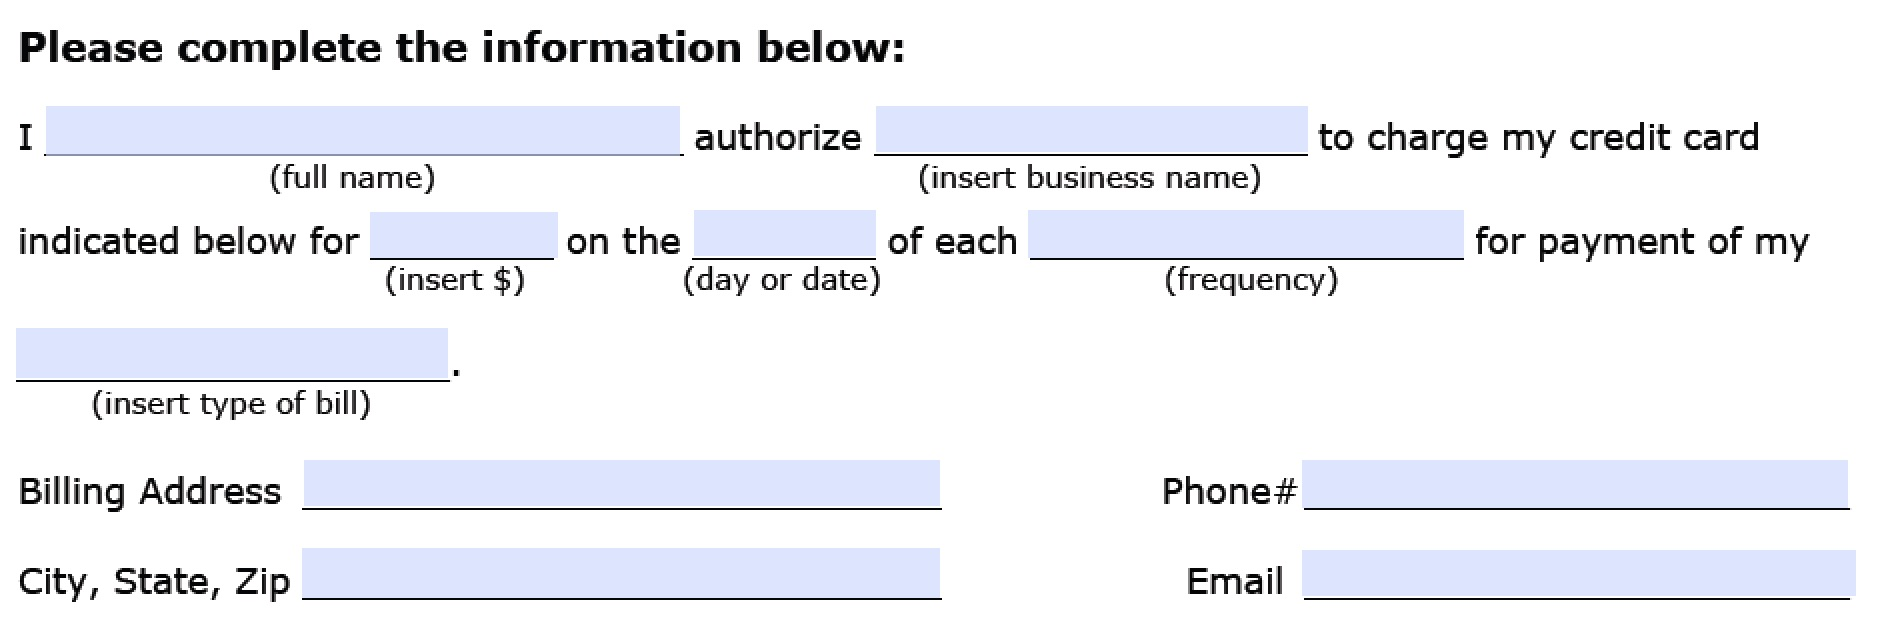 recurring payment authorization form template credit recurring payment authorization form part 2